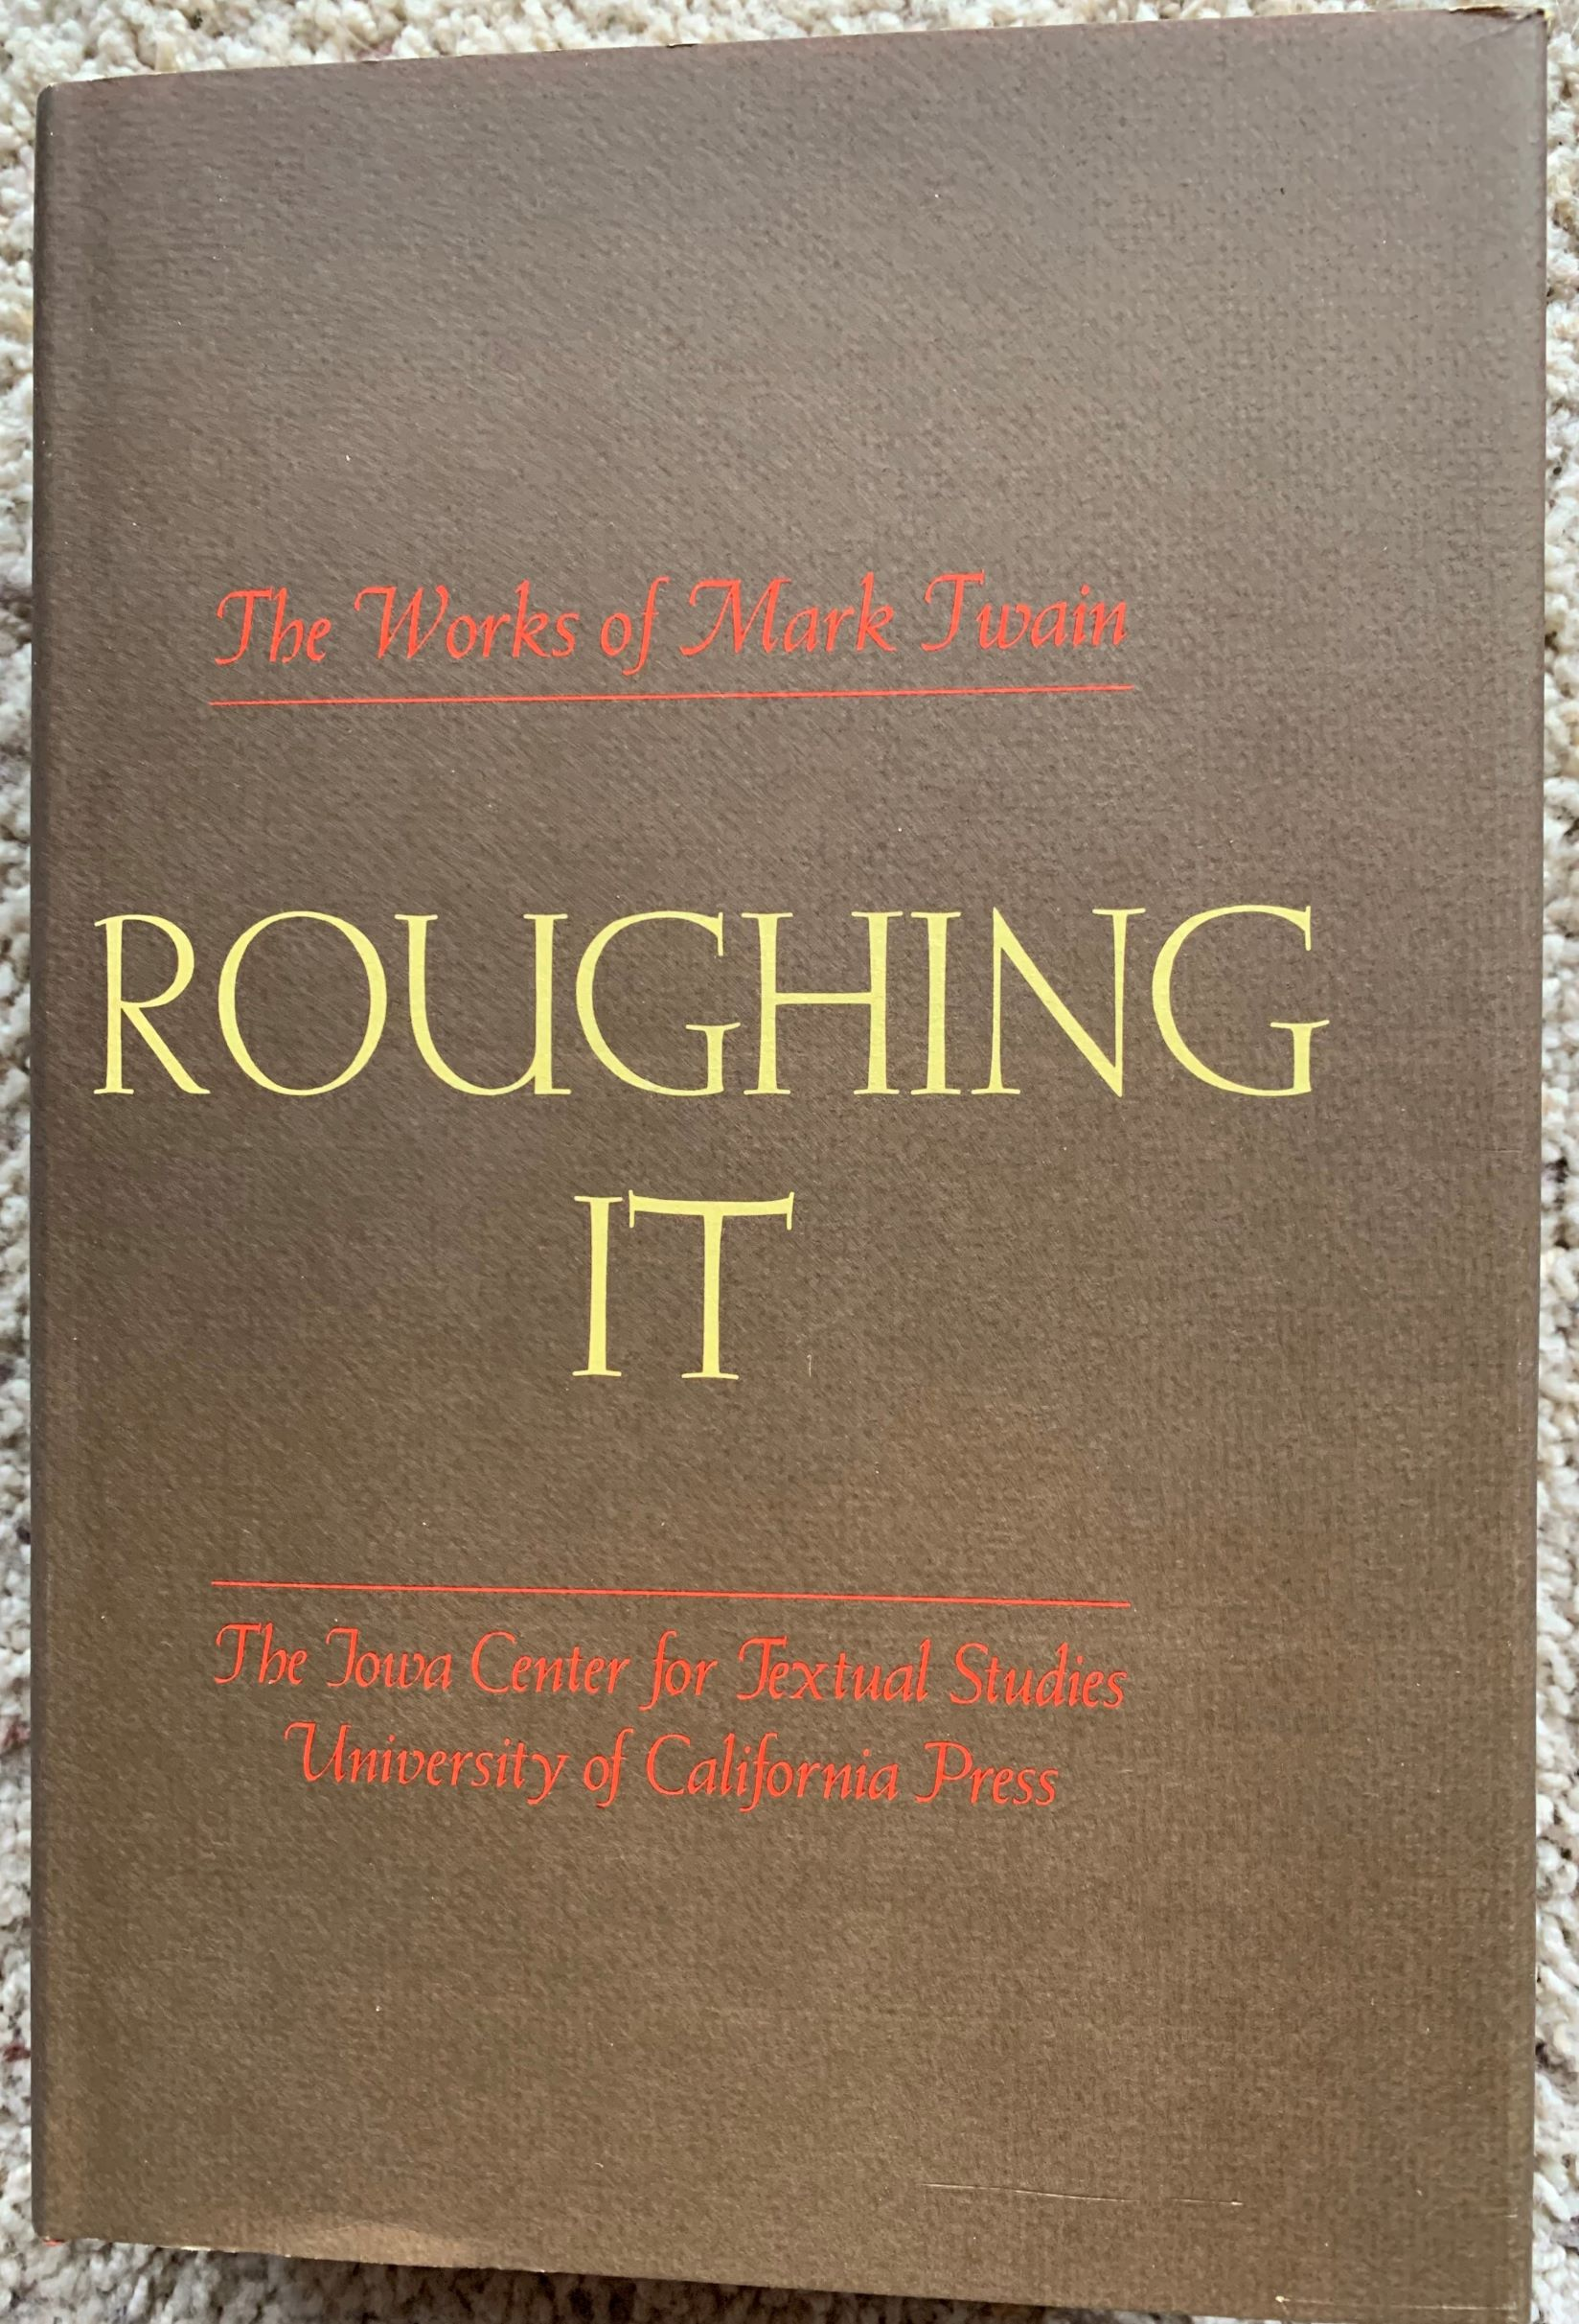 Image for Roughing It.  (Volume 2 in The Works of Mark Twain Series).